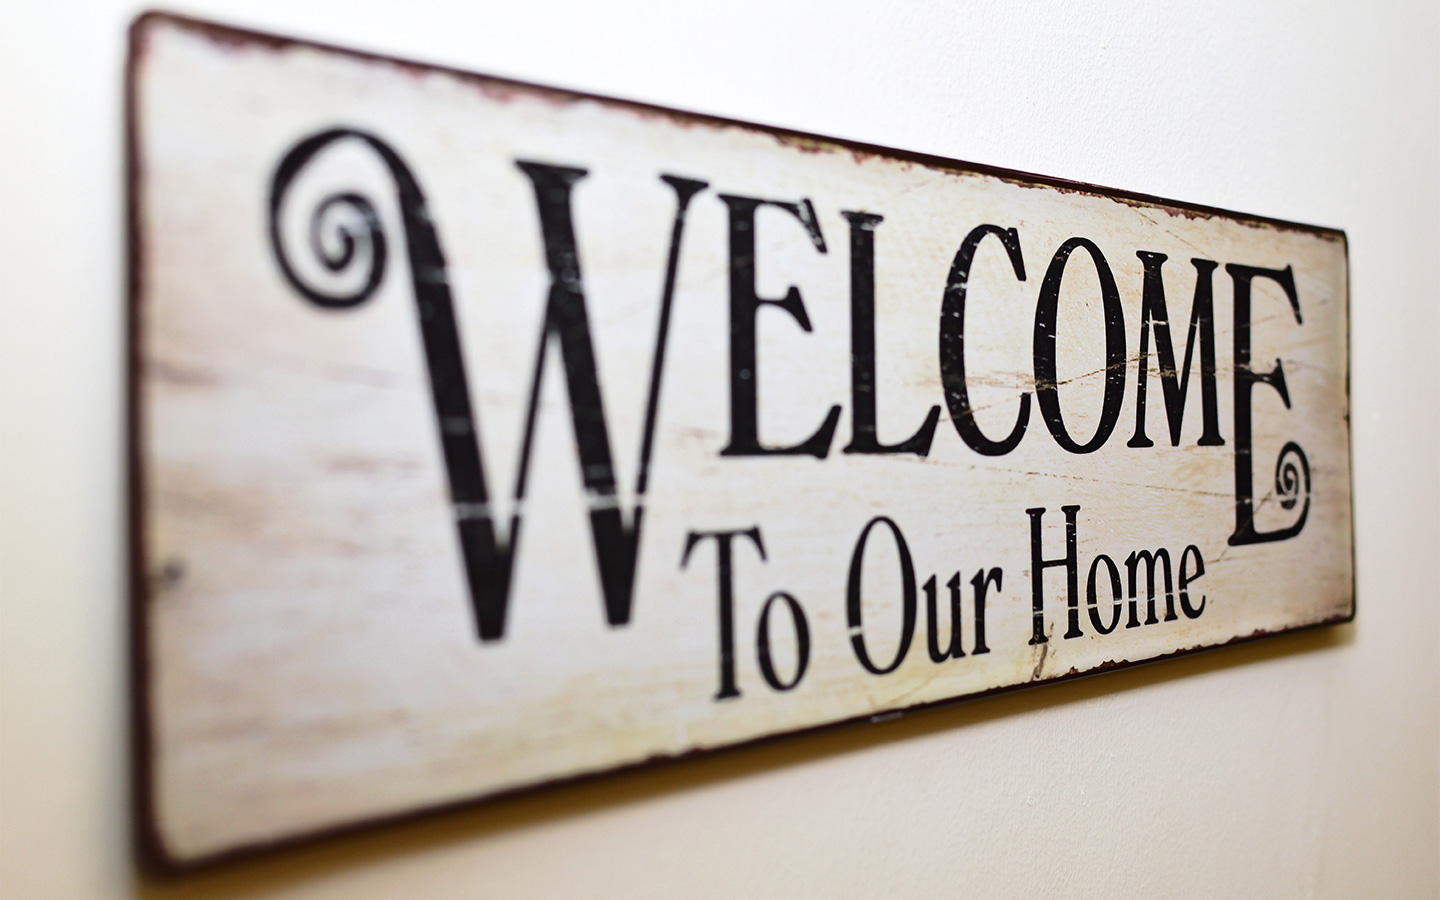 A welcome note should be one of the responsibilities of landlords